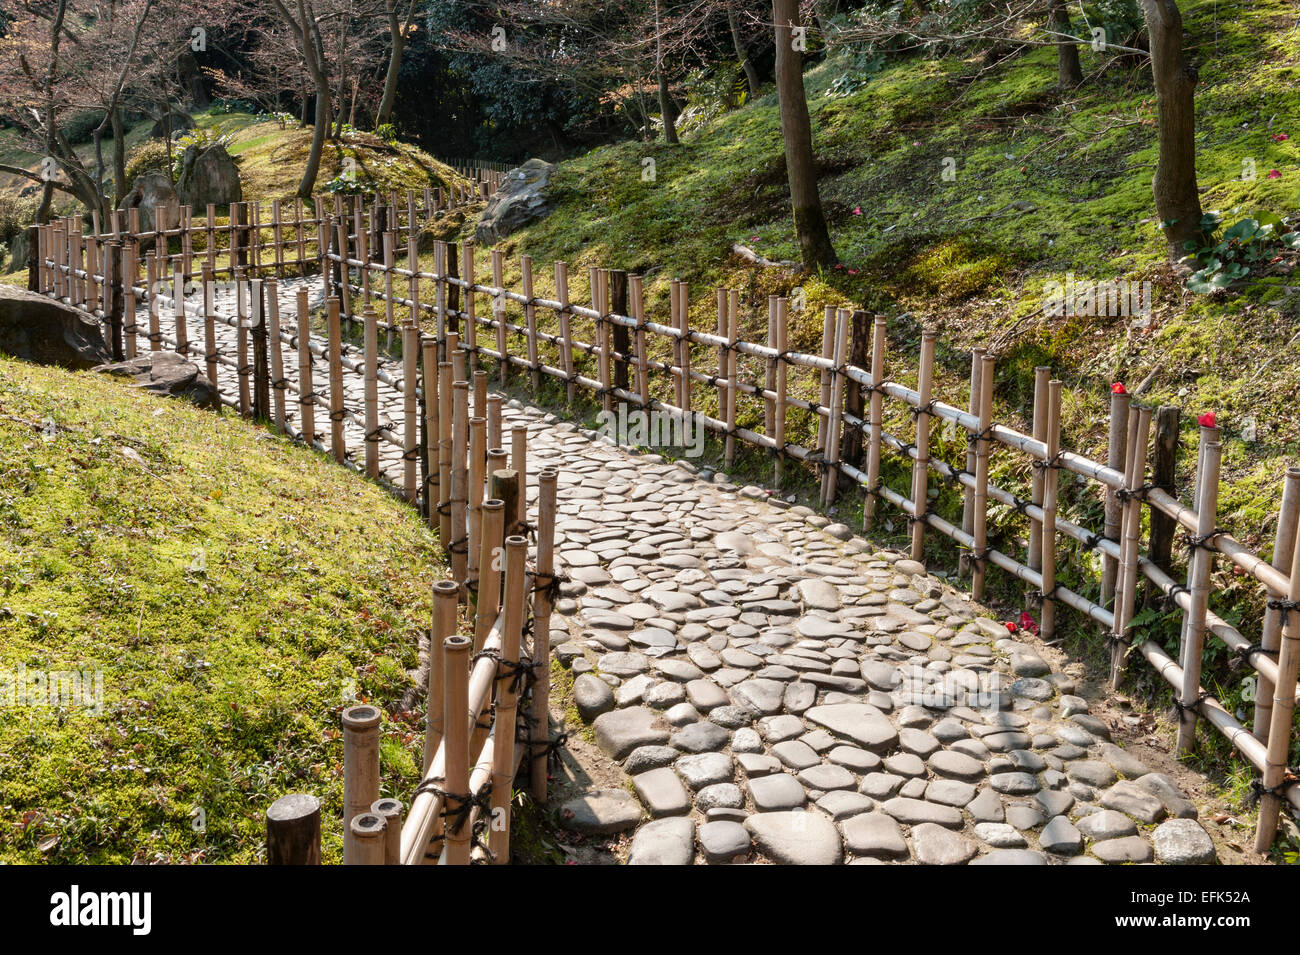 Ritsurin Koen Garden, Takamatsu, Japan. A Path Made From Cobblestones And  Lined With Low Bamboo Fences